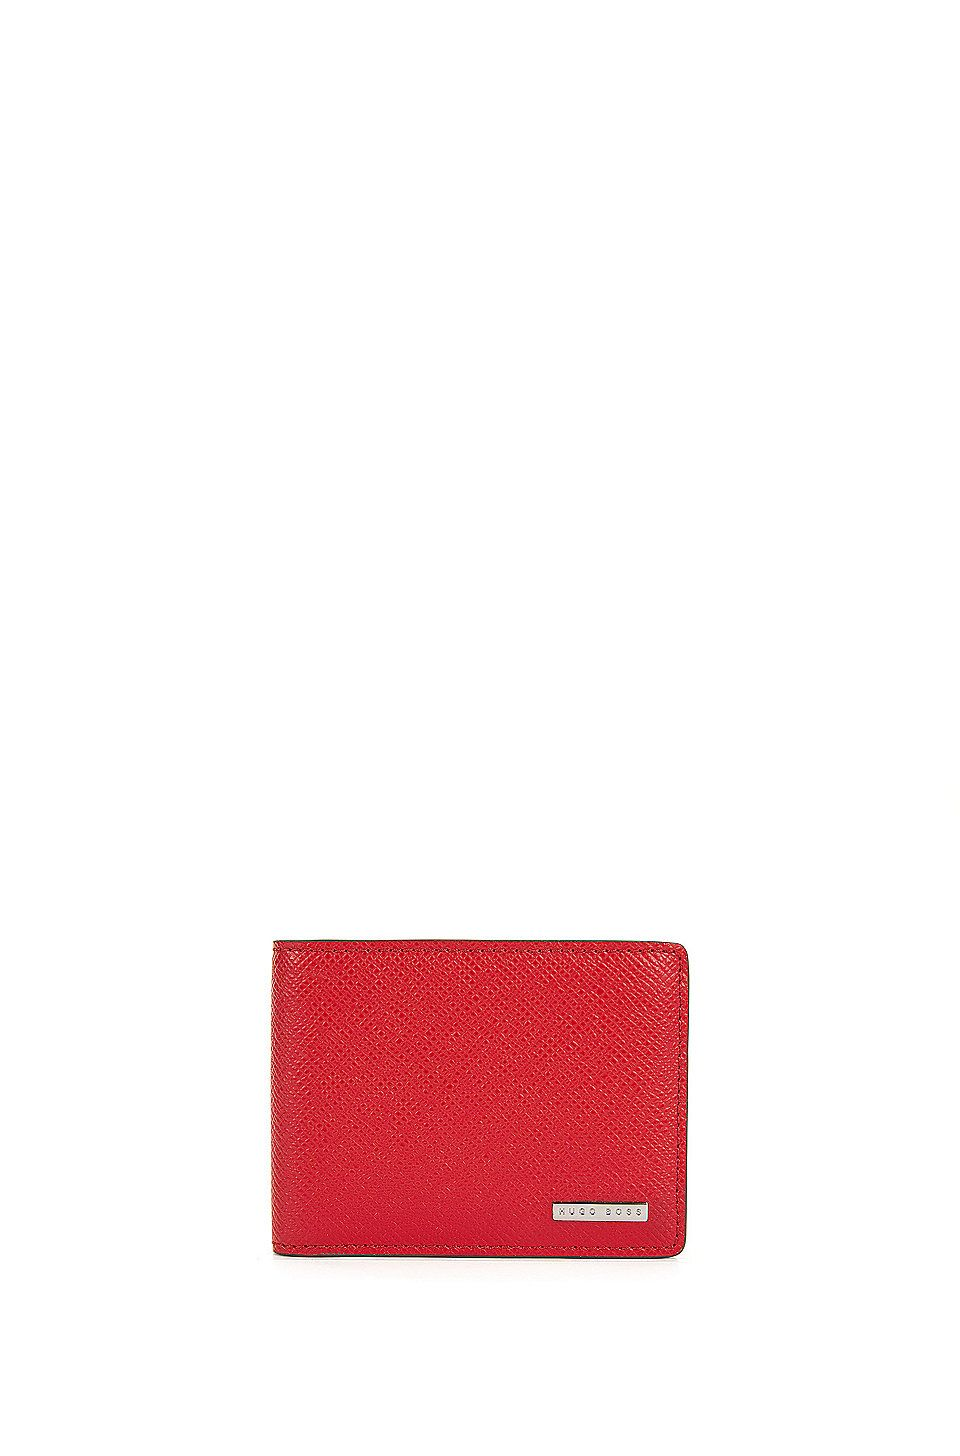 80bb46787e HUGO BOSS Signature Collection wallet in palmellato leather - Red Wallets  and Key Rings from BOSS for Men in the official HUGO BOSS Online Store free  ...